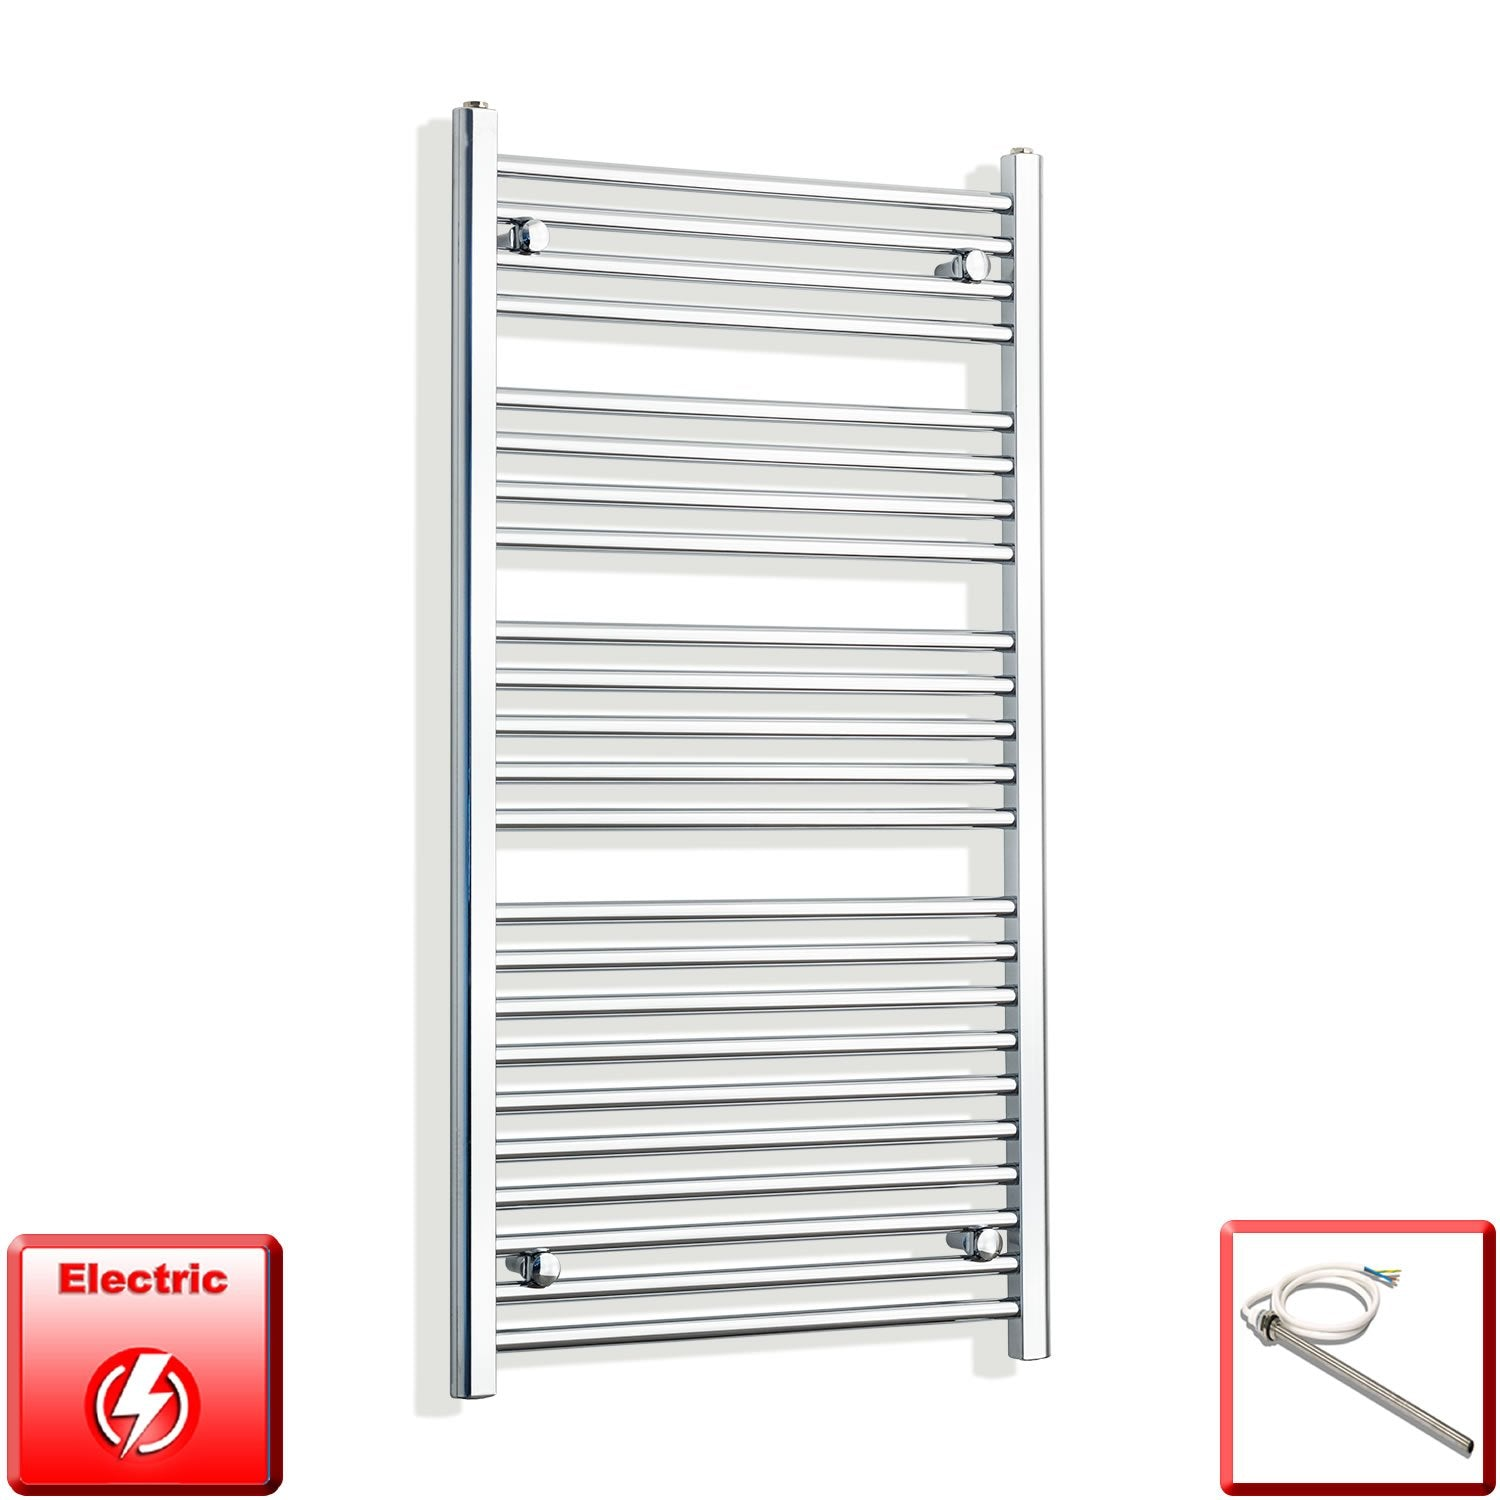 700mm Wide 1200mm High Flat Or Curved Chrome Pre-Filled Electric Heated Towel Rail Radiator HTR,Single Heat Element / Straight